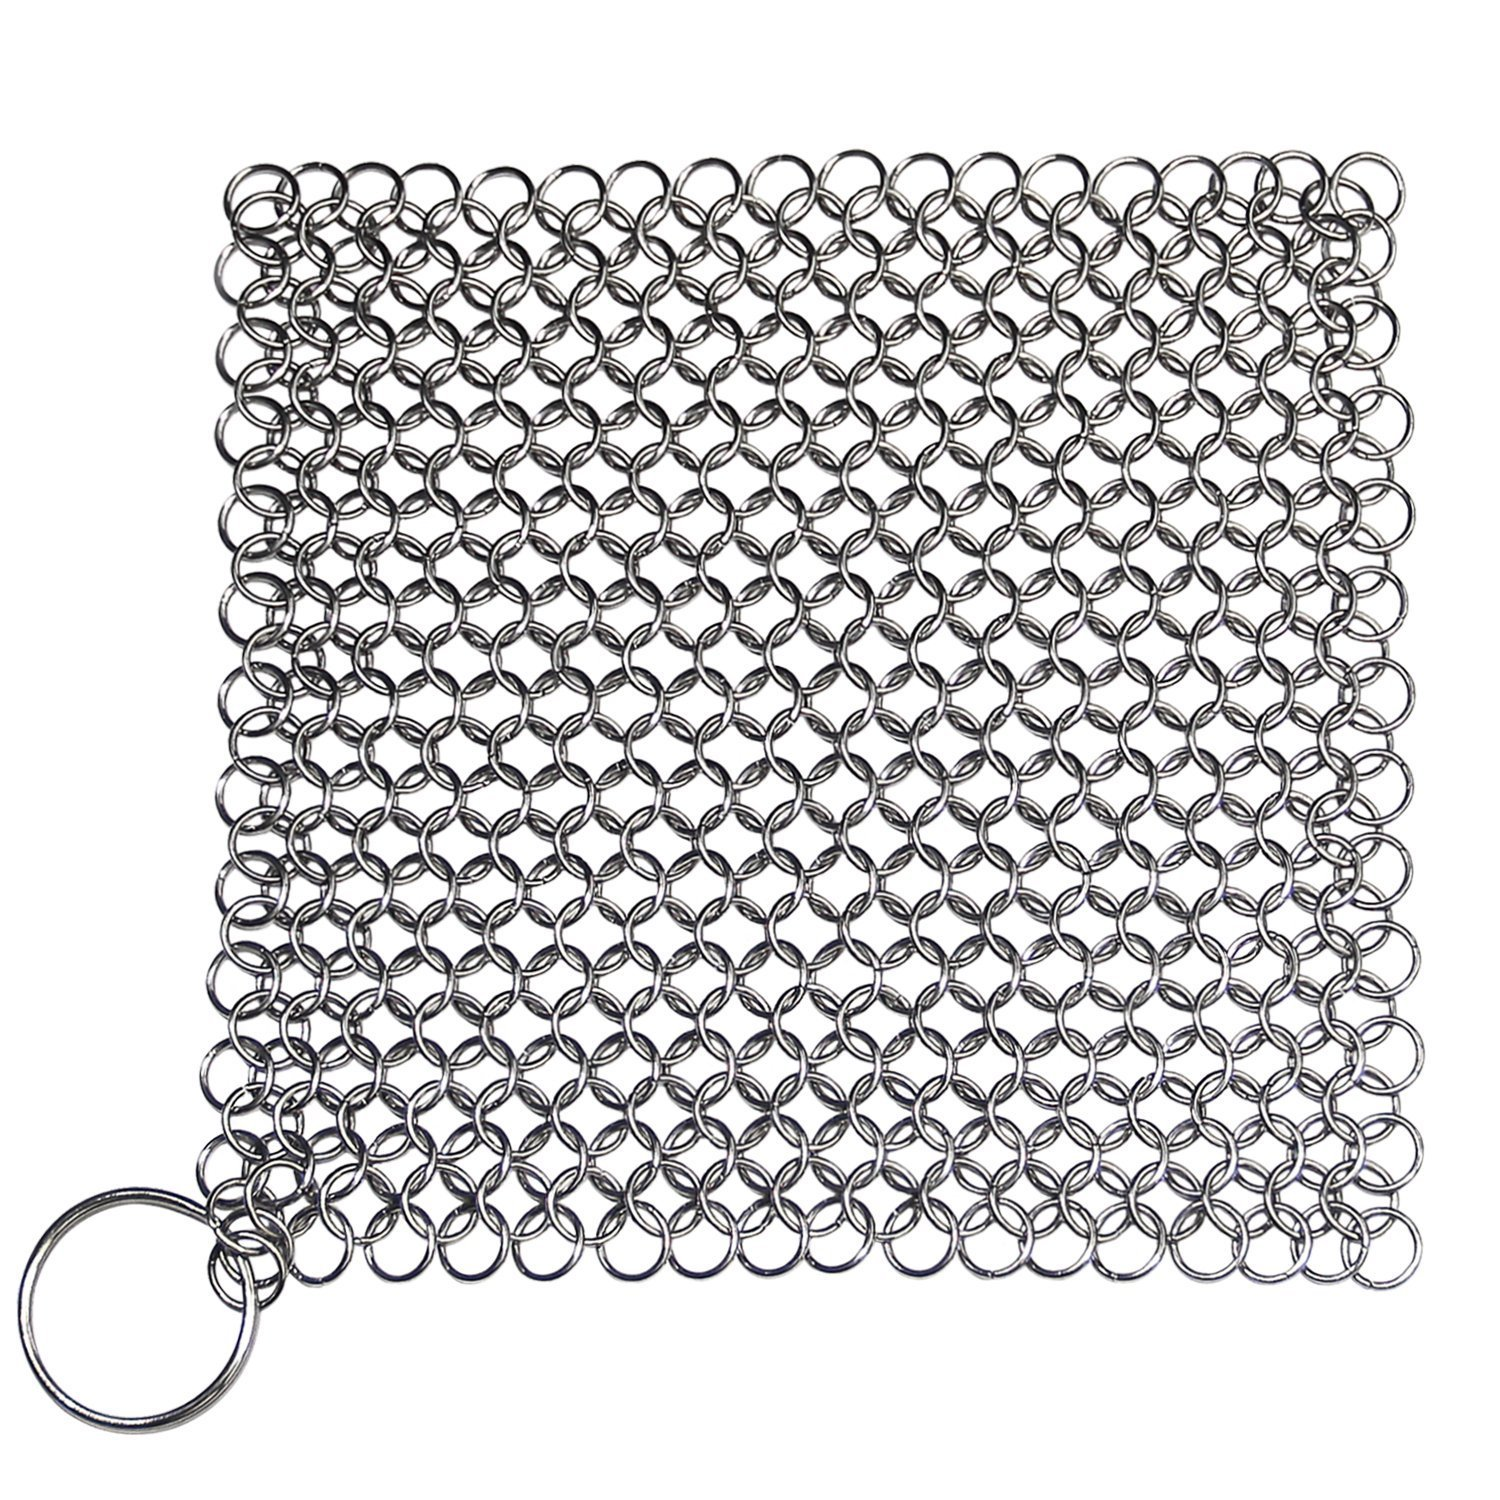 Iron Cleaner 7x7 Inch Stainless Steel Cookware Cleaner (Square)